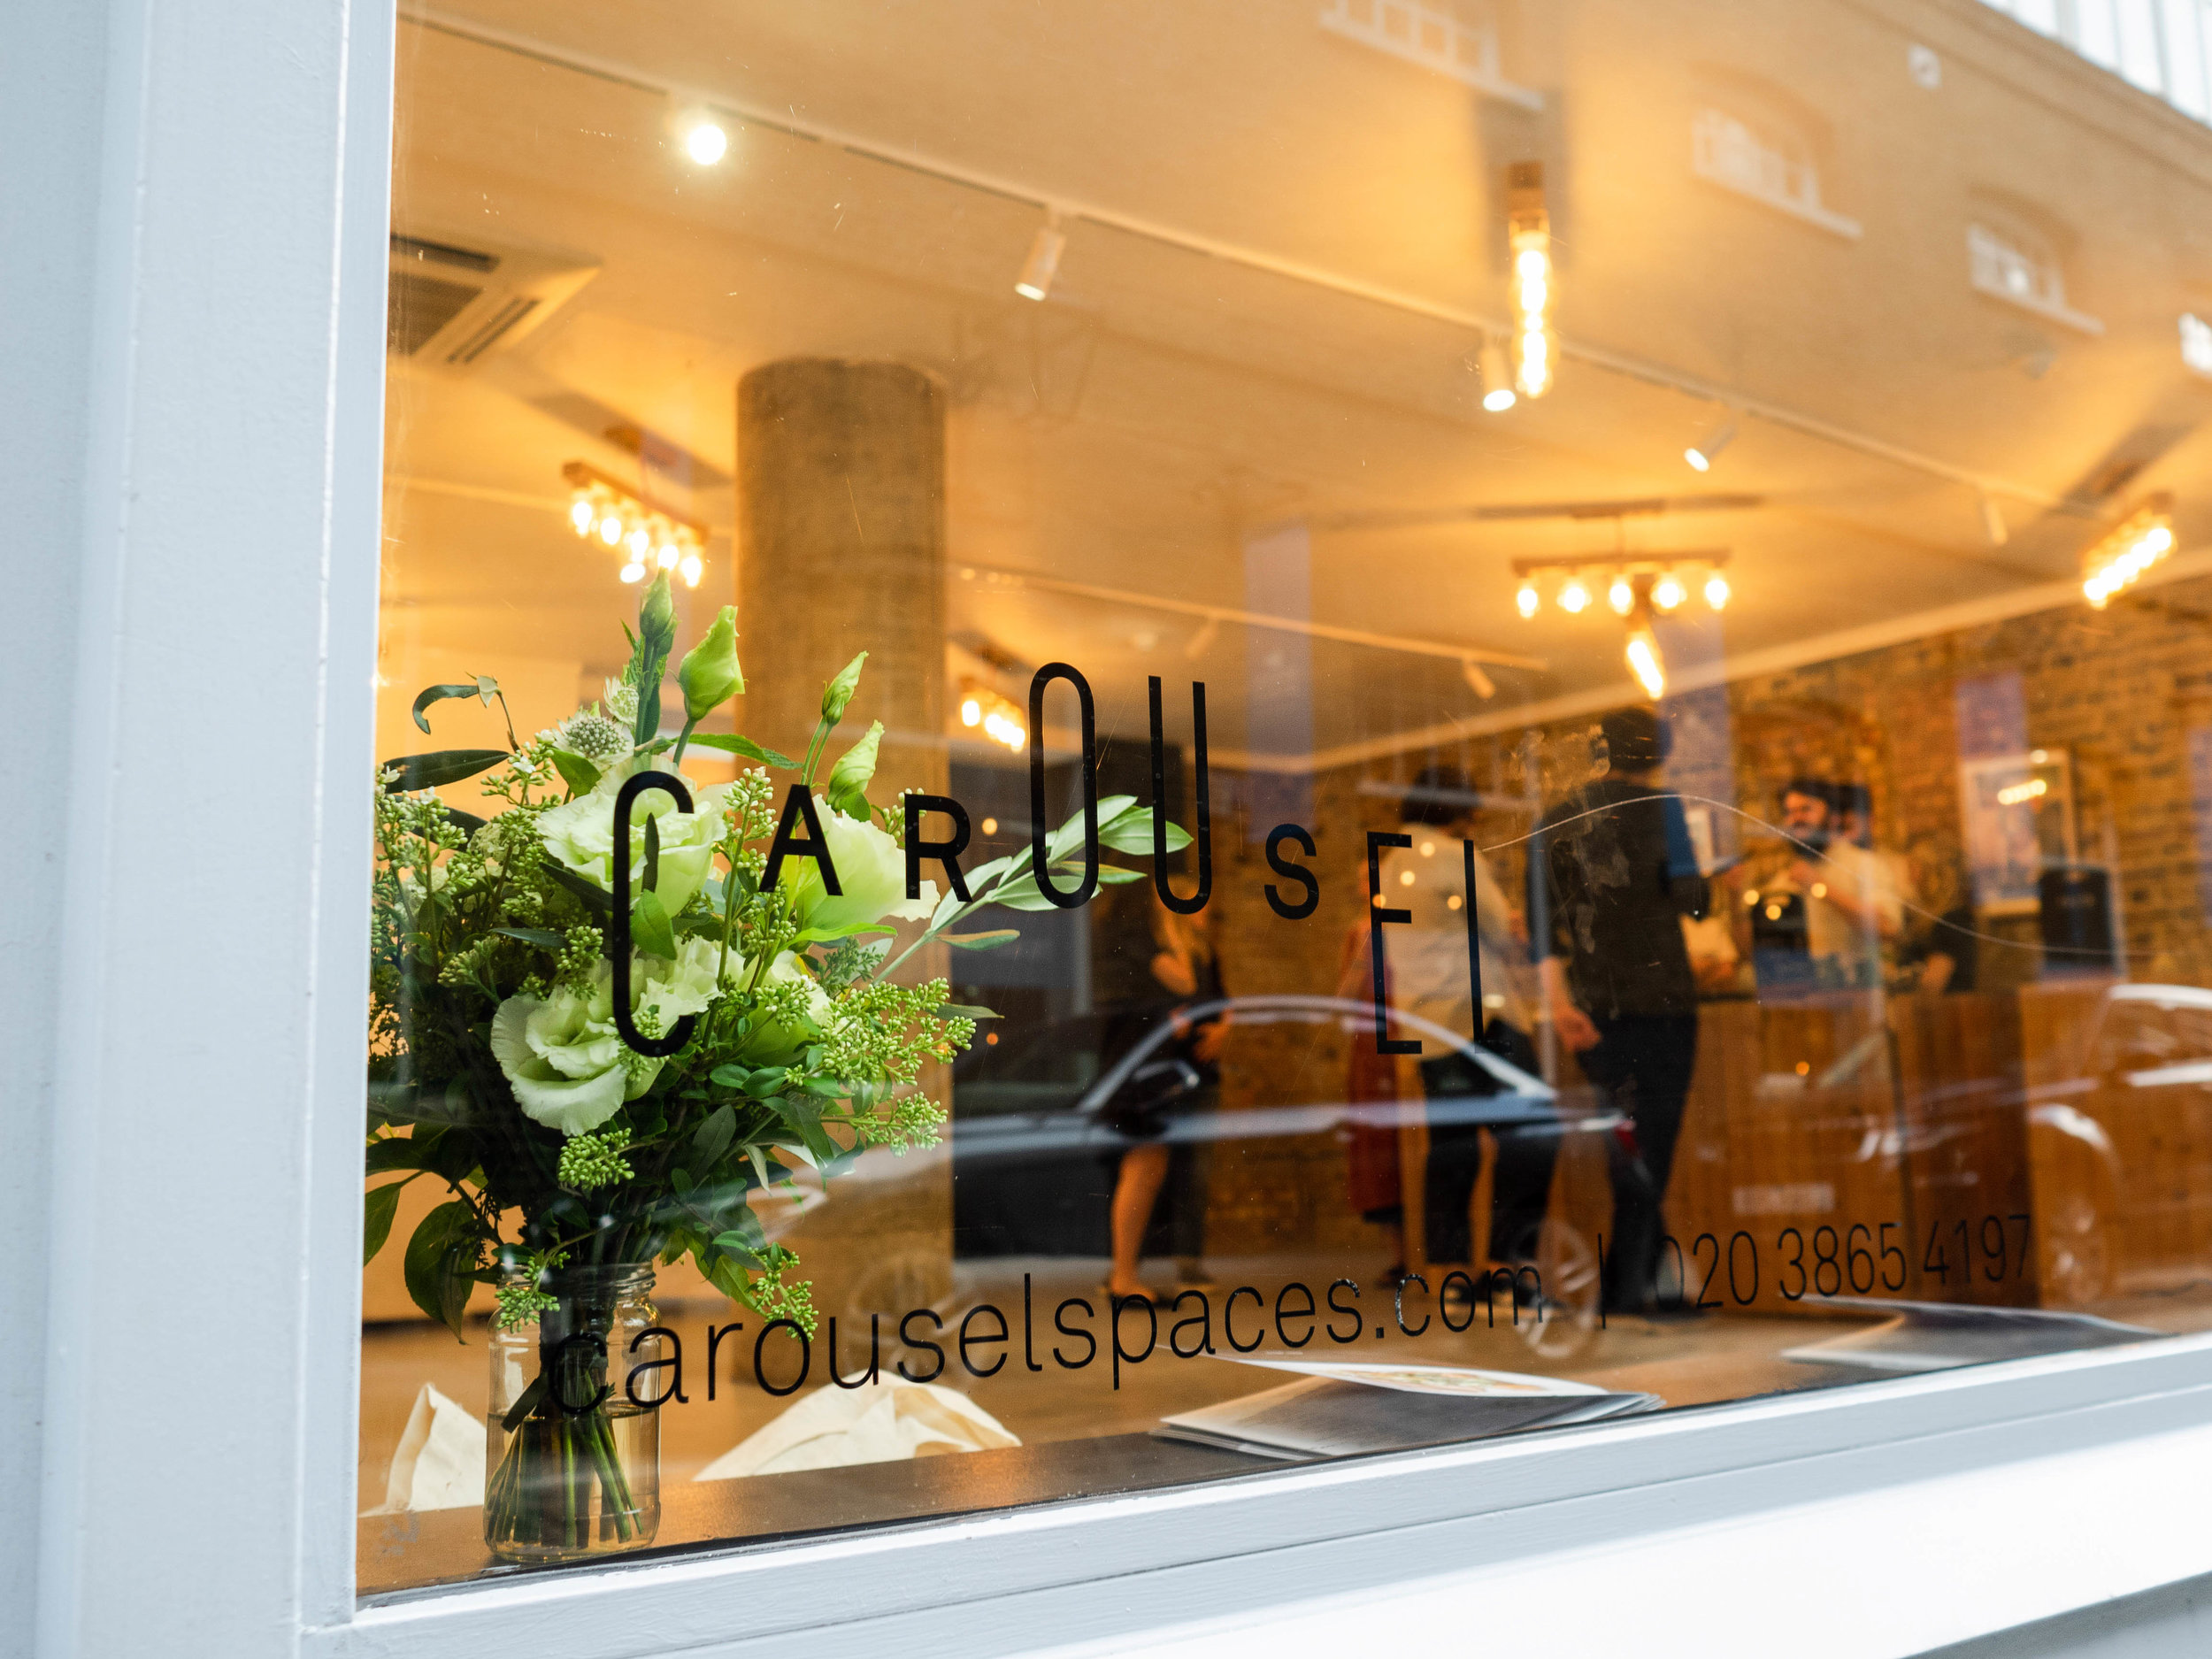 Carousel 7 Dials launch-7.jpg